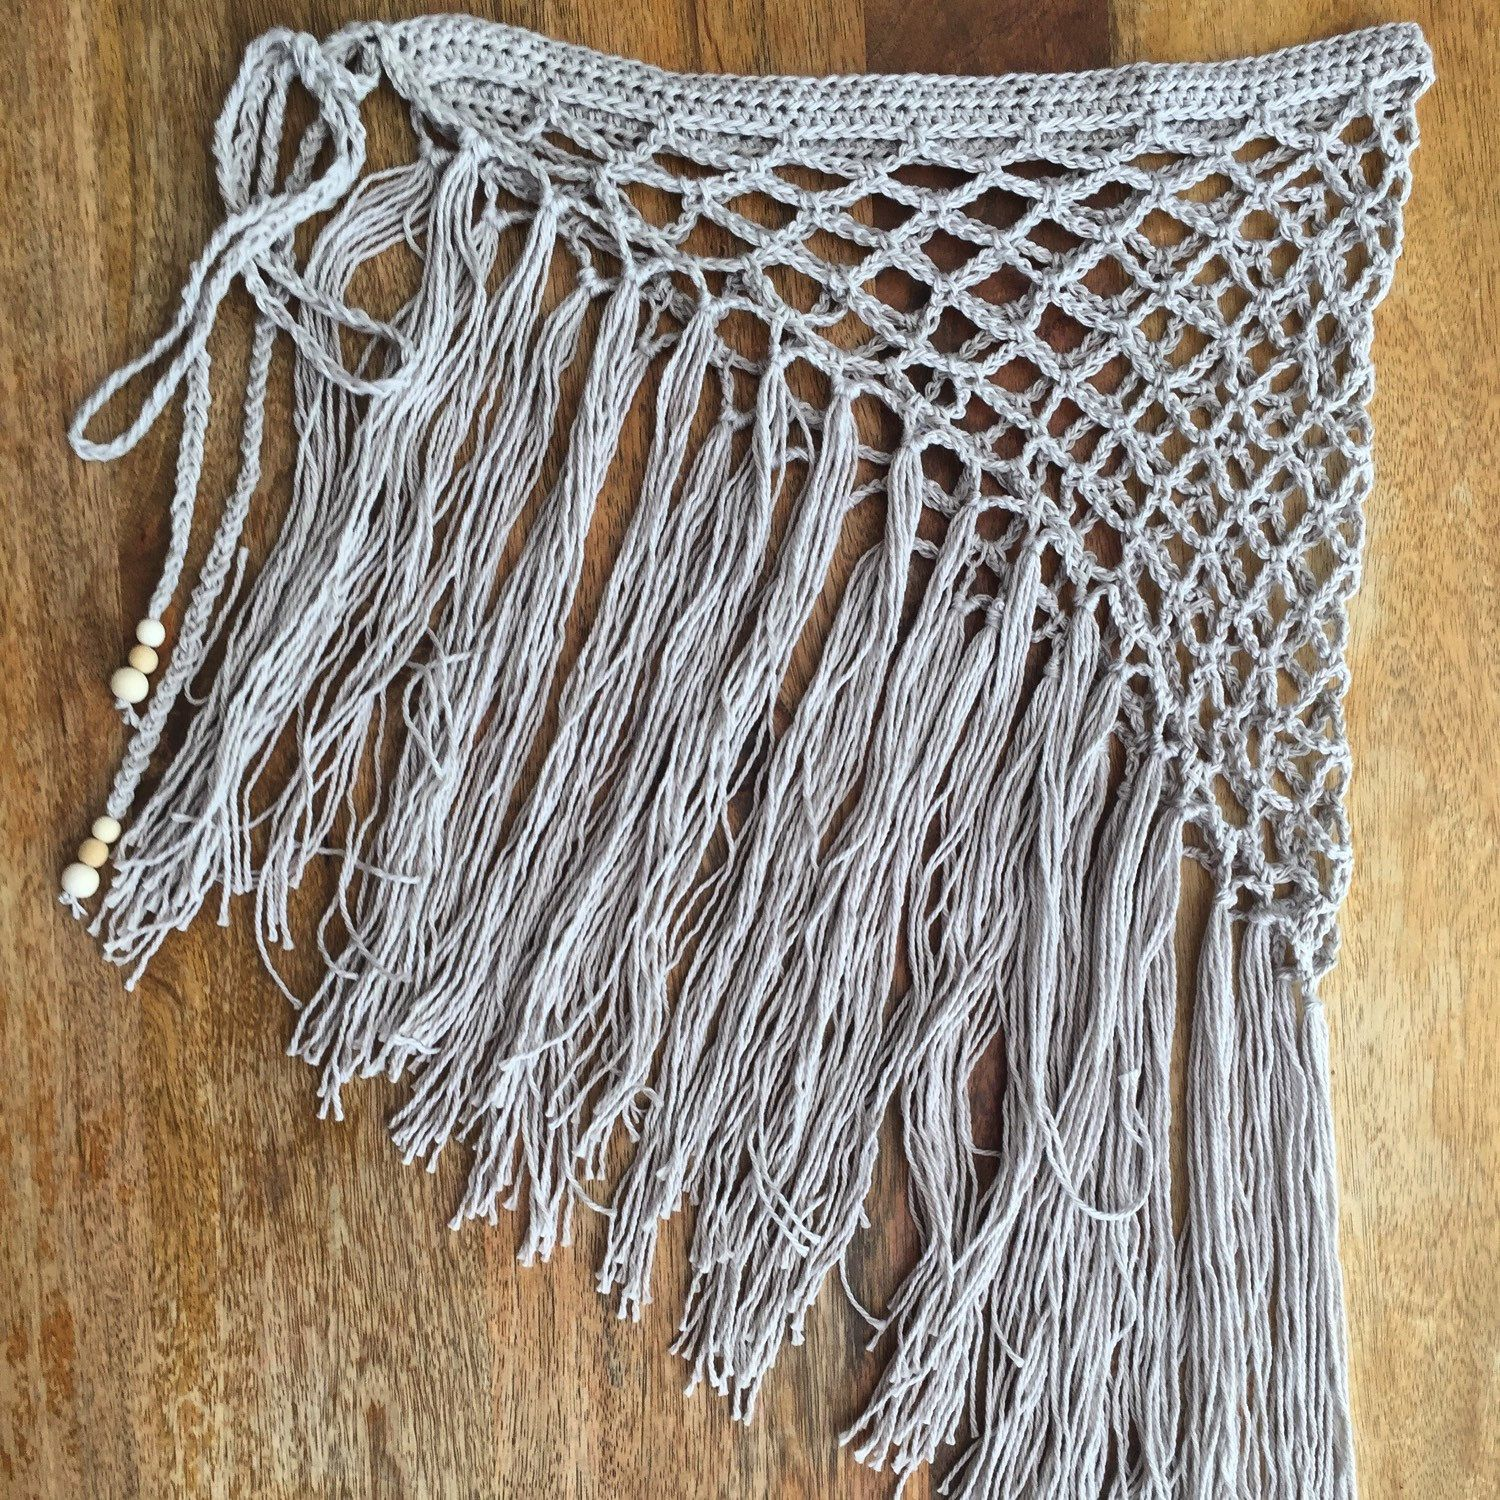 Gypsy fringe hip scarf. Crochet sarong. Crochet wrap. Beach wrap. Cover up. Gypsy clothing. Boho clothing. Festival skirt. Fringe skirt